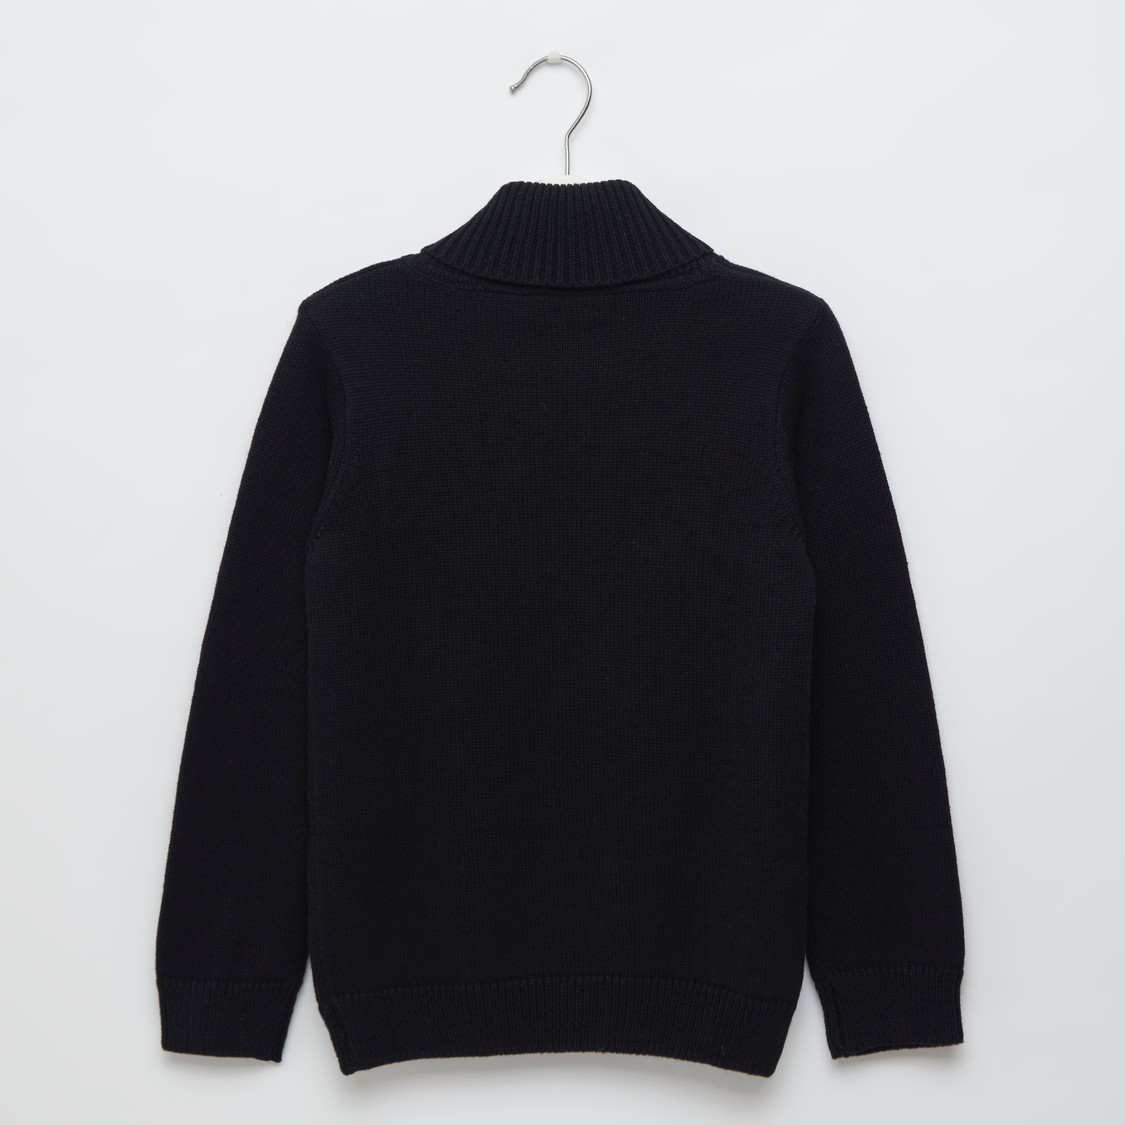 Embroidered Detail Sweater with High Neck and Long Sleeves